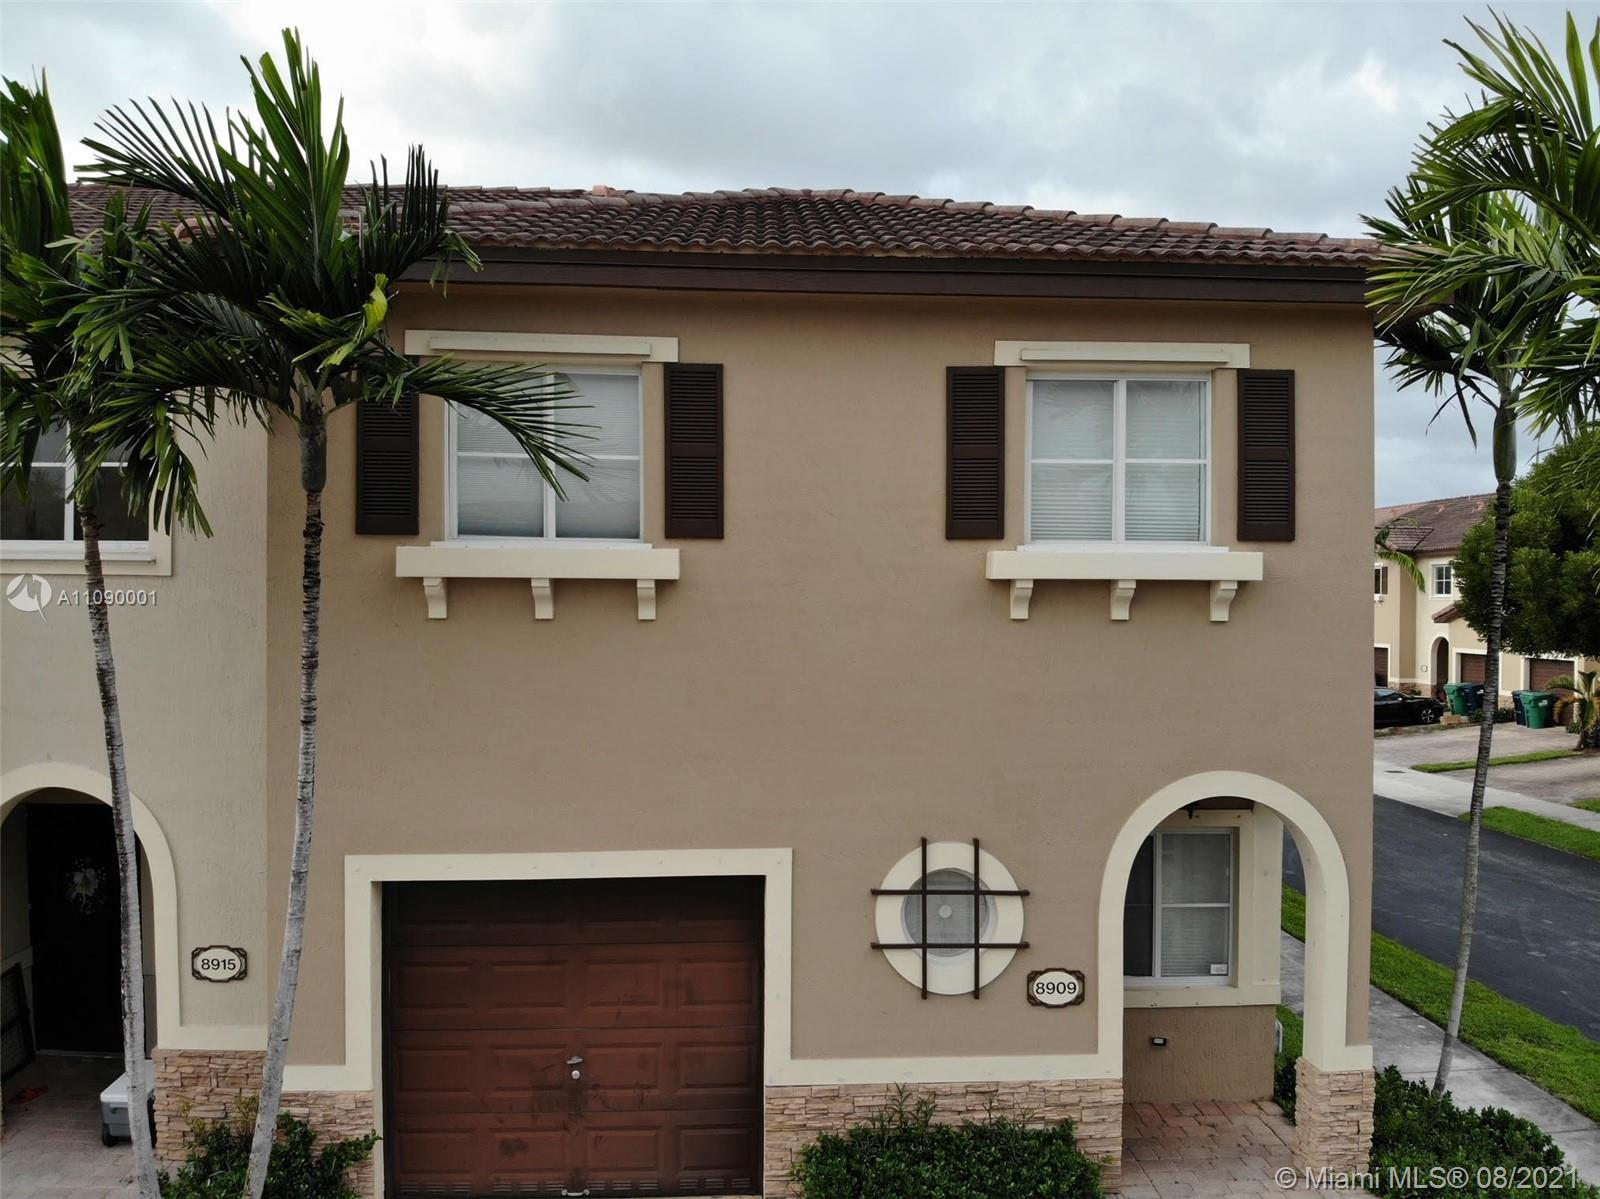 Great corner unit in an excellent community, great conditions, ready to make it your home. Show it and rent it. Send me your best offer. Full application, background check and pay stubs. HOA approval required, HOA application attached. NO PETS. First and TWO Deposits. Supra lock Box. Please turn off all lights and lock all doors